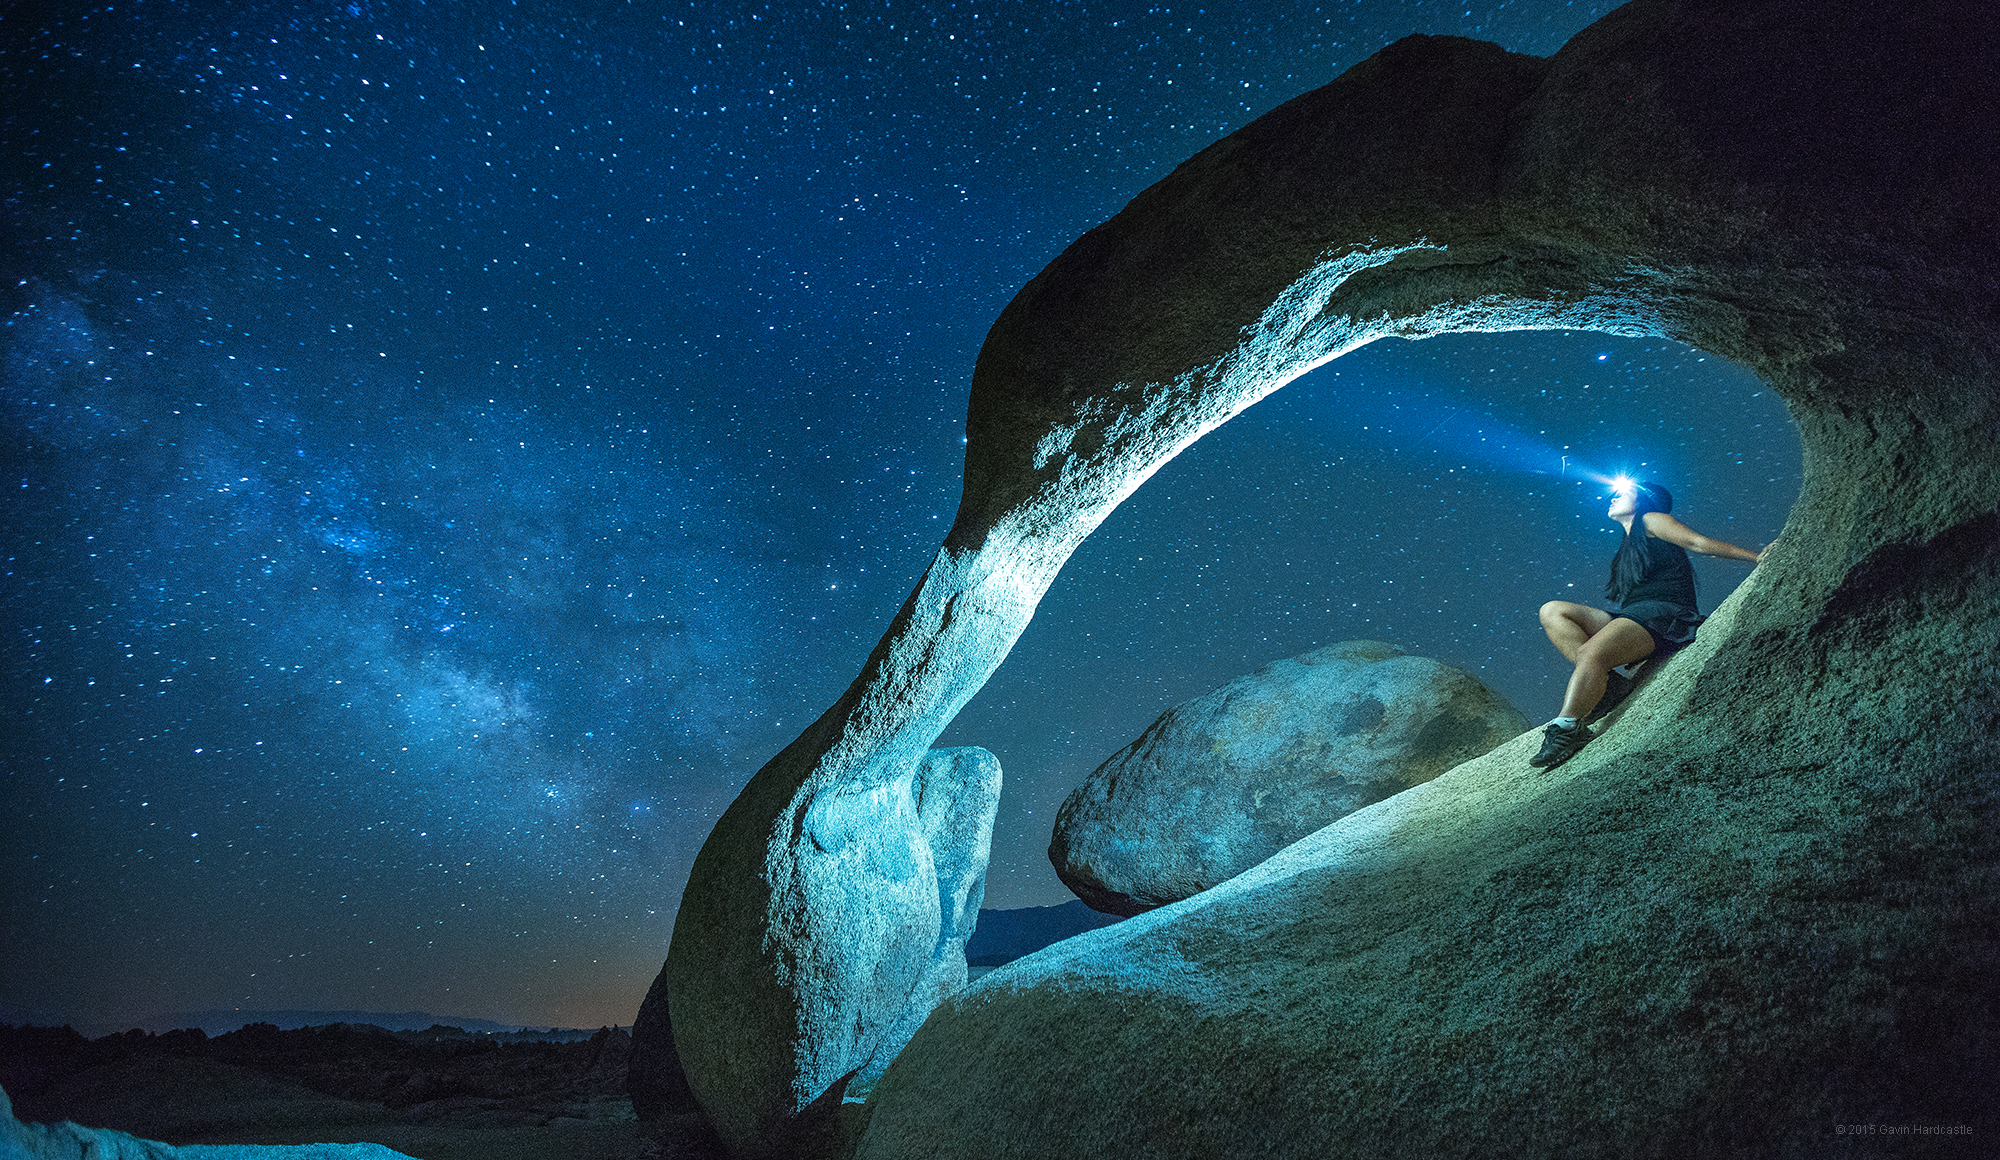 Astrophotography Photography Workshop